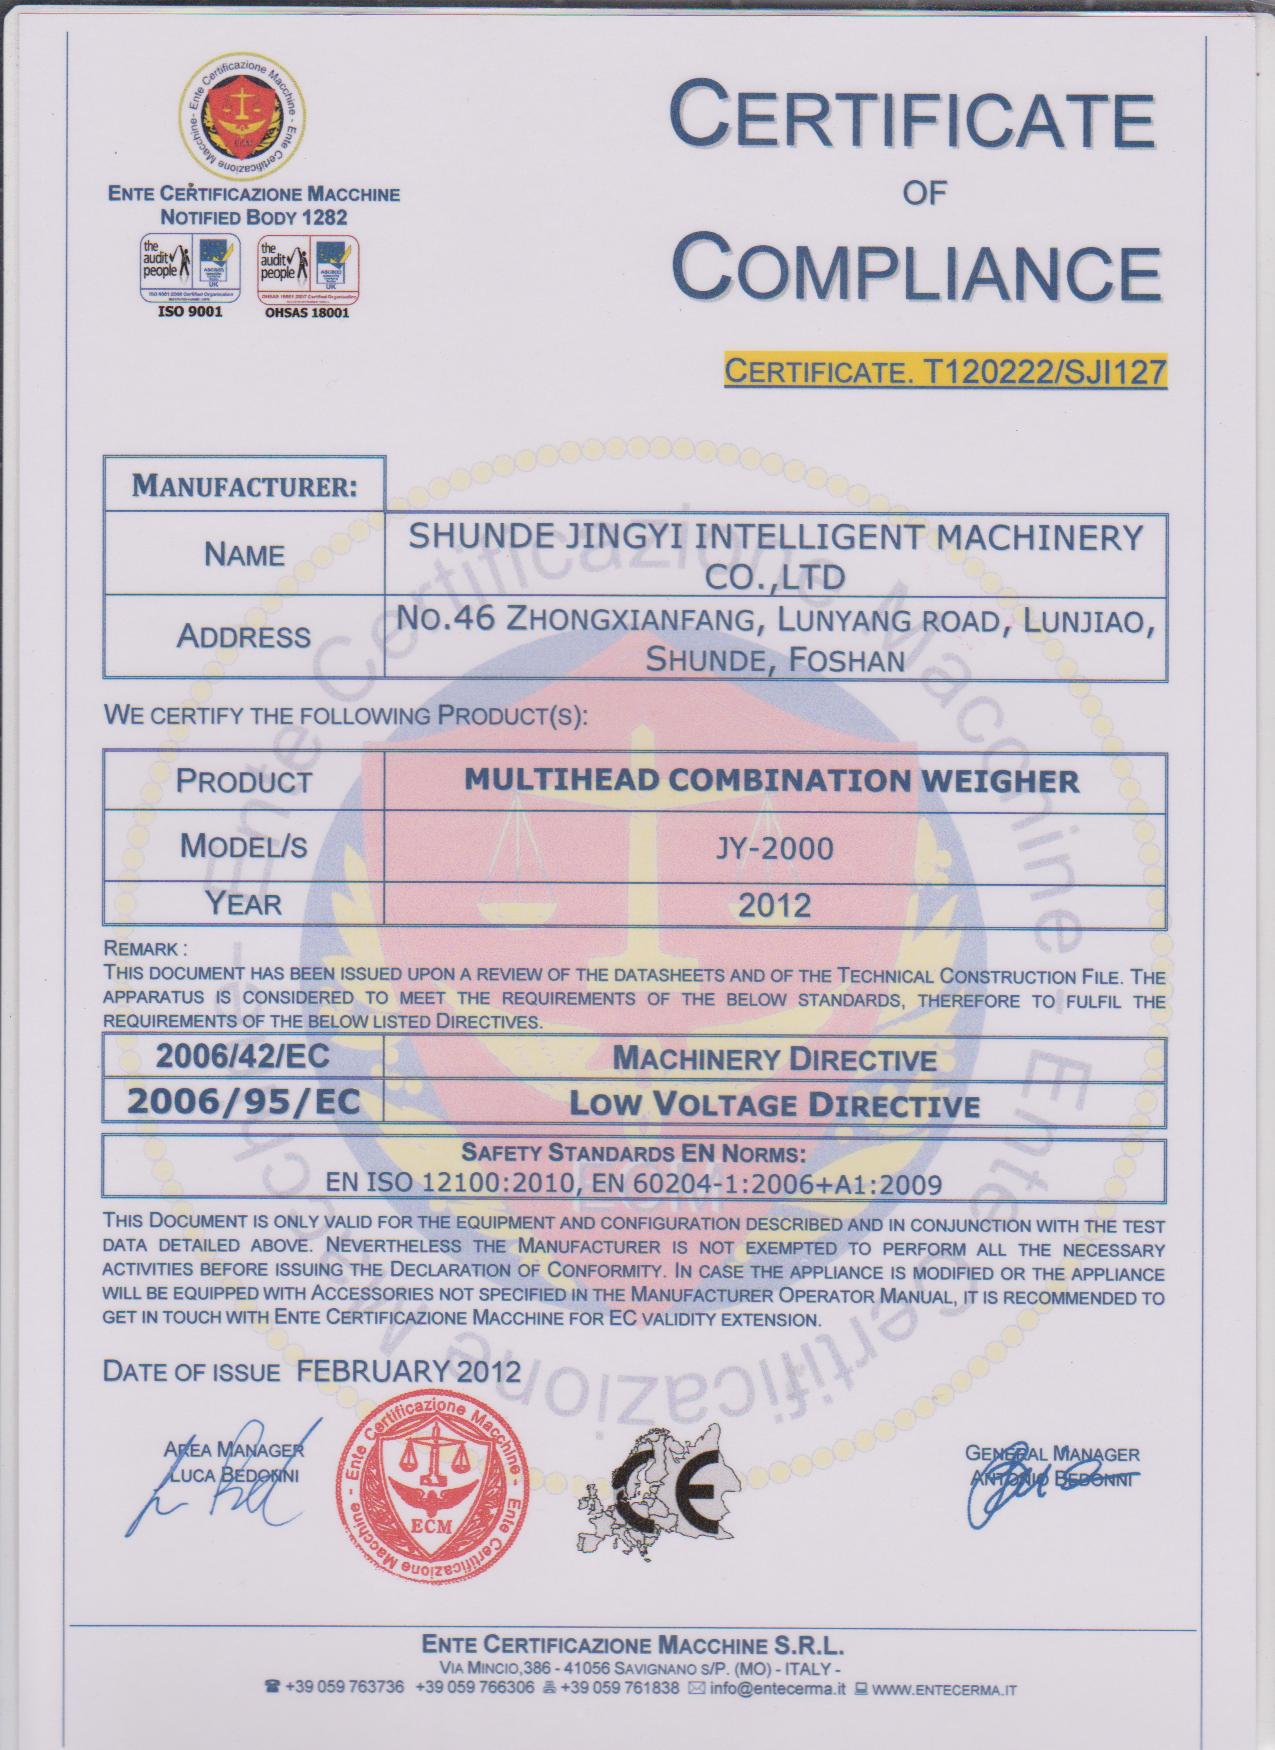 CE Certificate for Multihead Combination Weigher